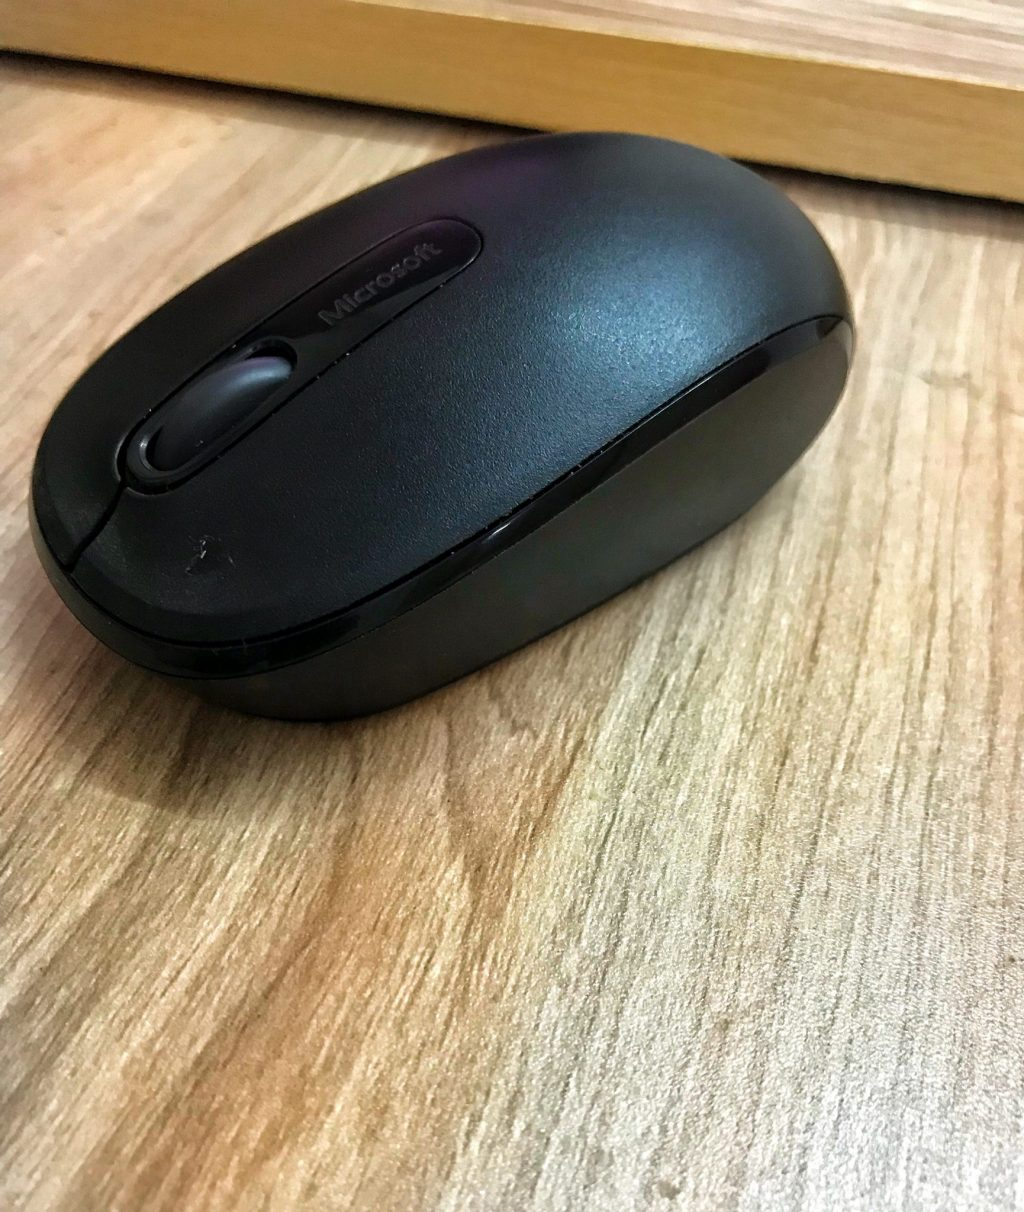 Microsoft Wireless mouse design